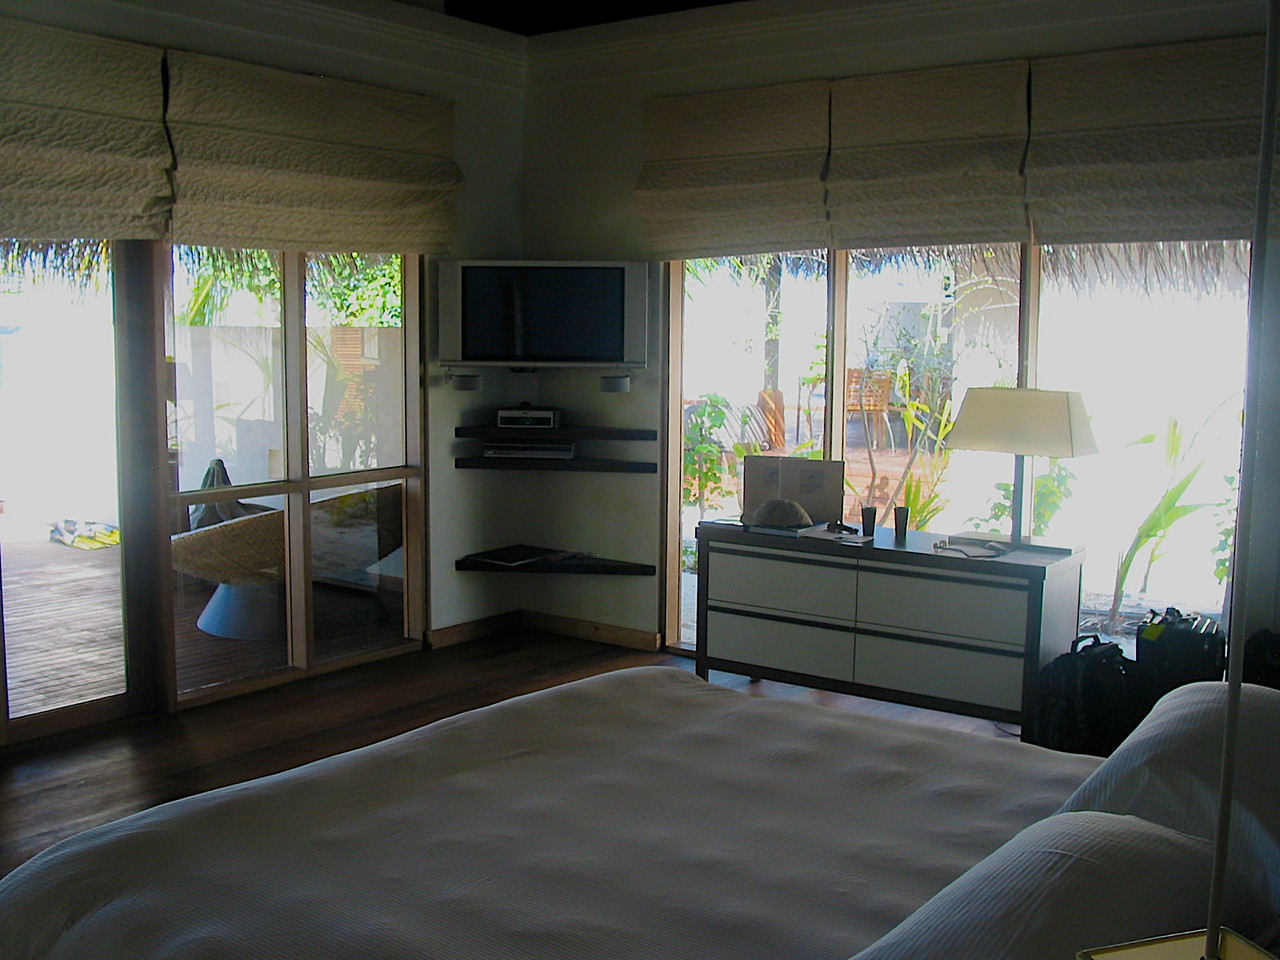 Rooms are large with teak wood floors.